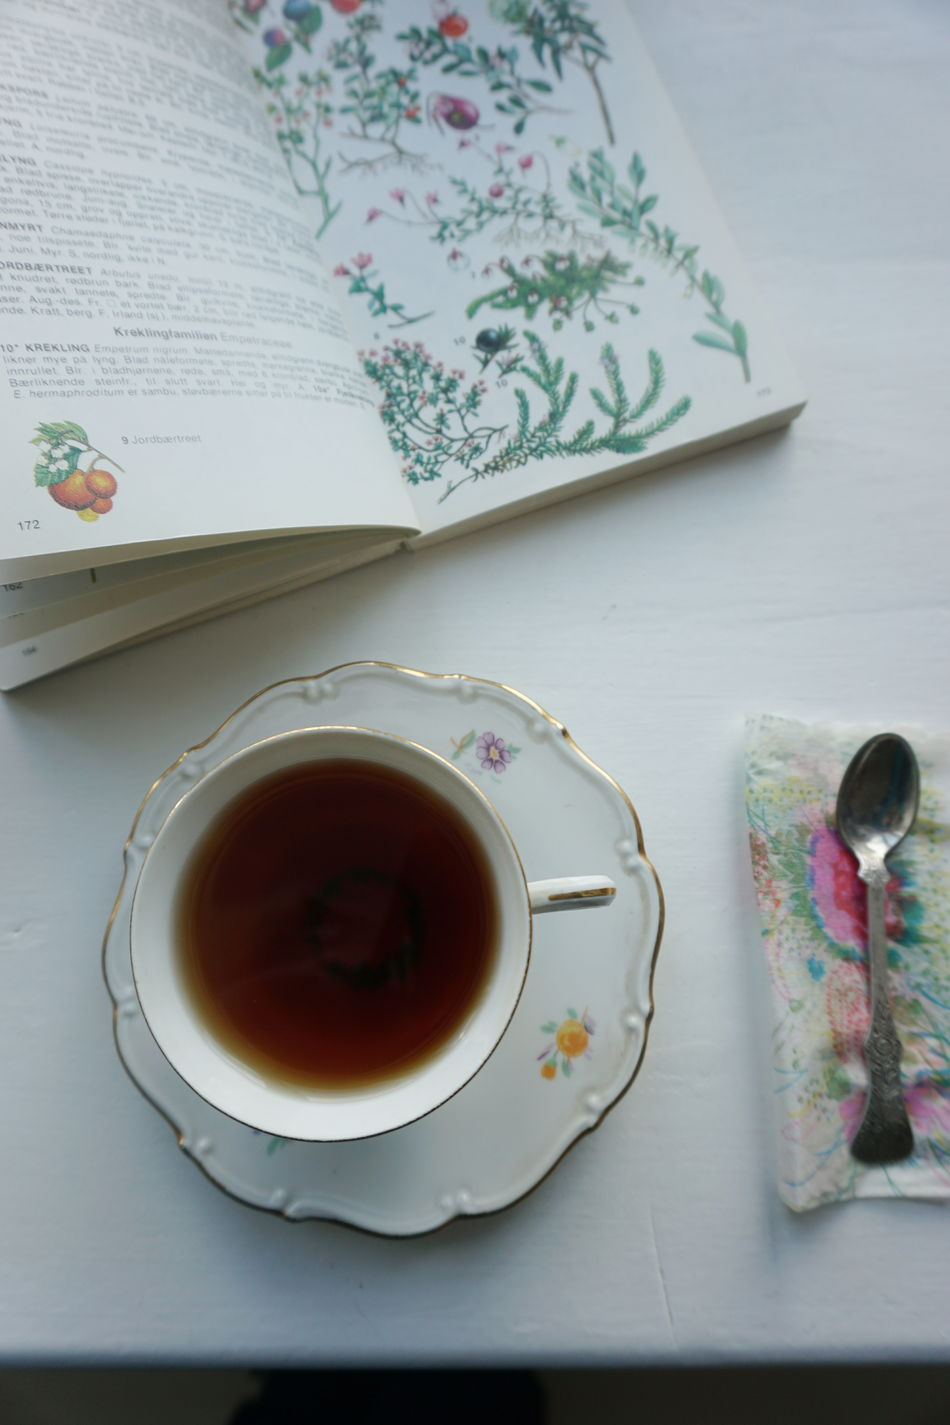 Book Books Botany Close-up Day Drink Food And Drink Freshness Indoors  No People Read Reading Refreshment Table Tea Tea - Hot Drink Tea Time Teapot